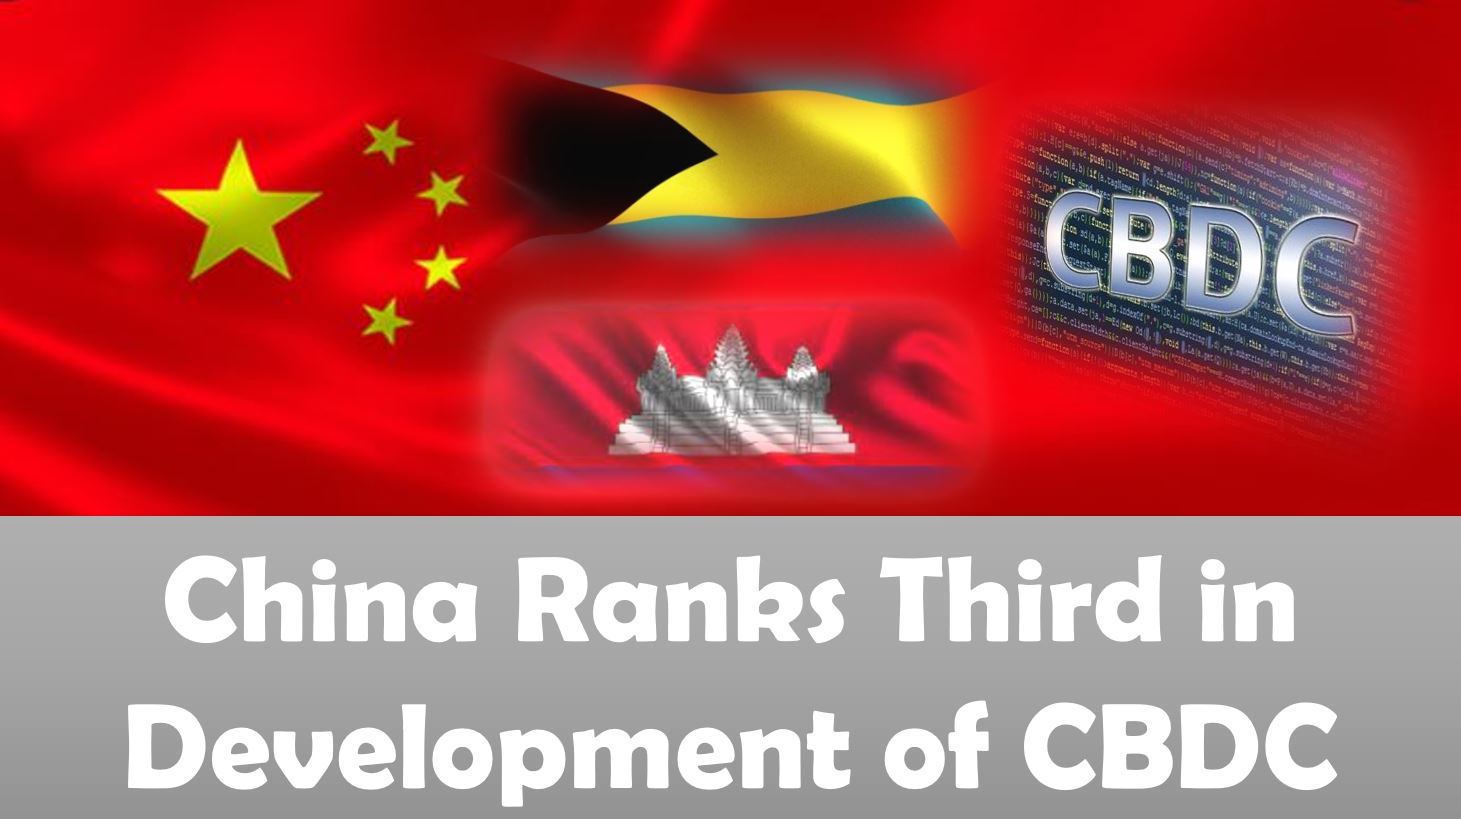 China Ranks Third in Development of CBDC